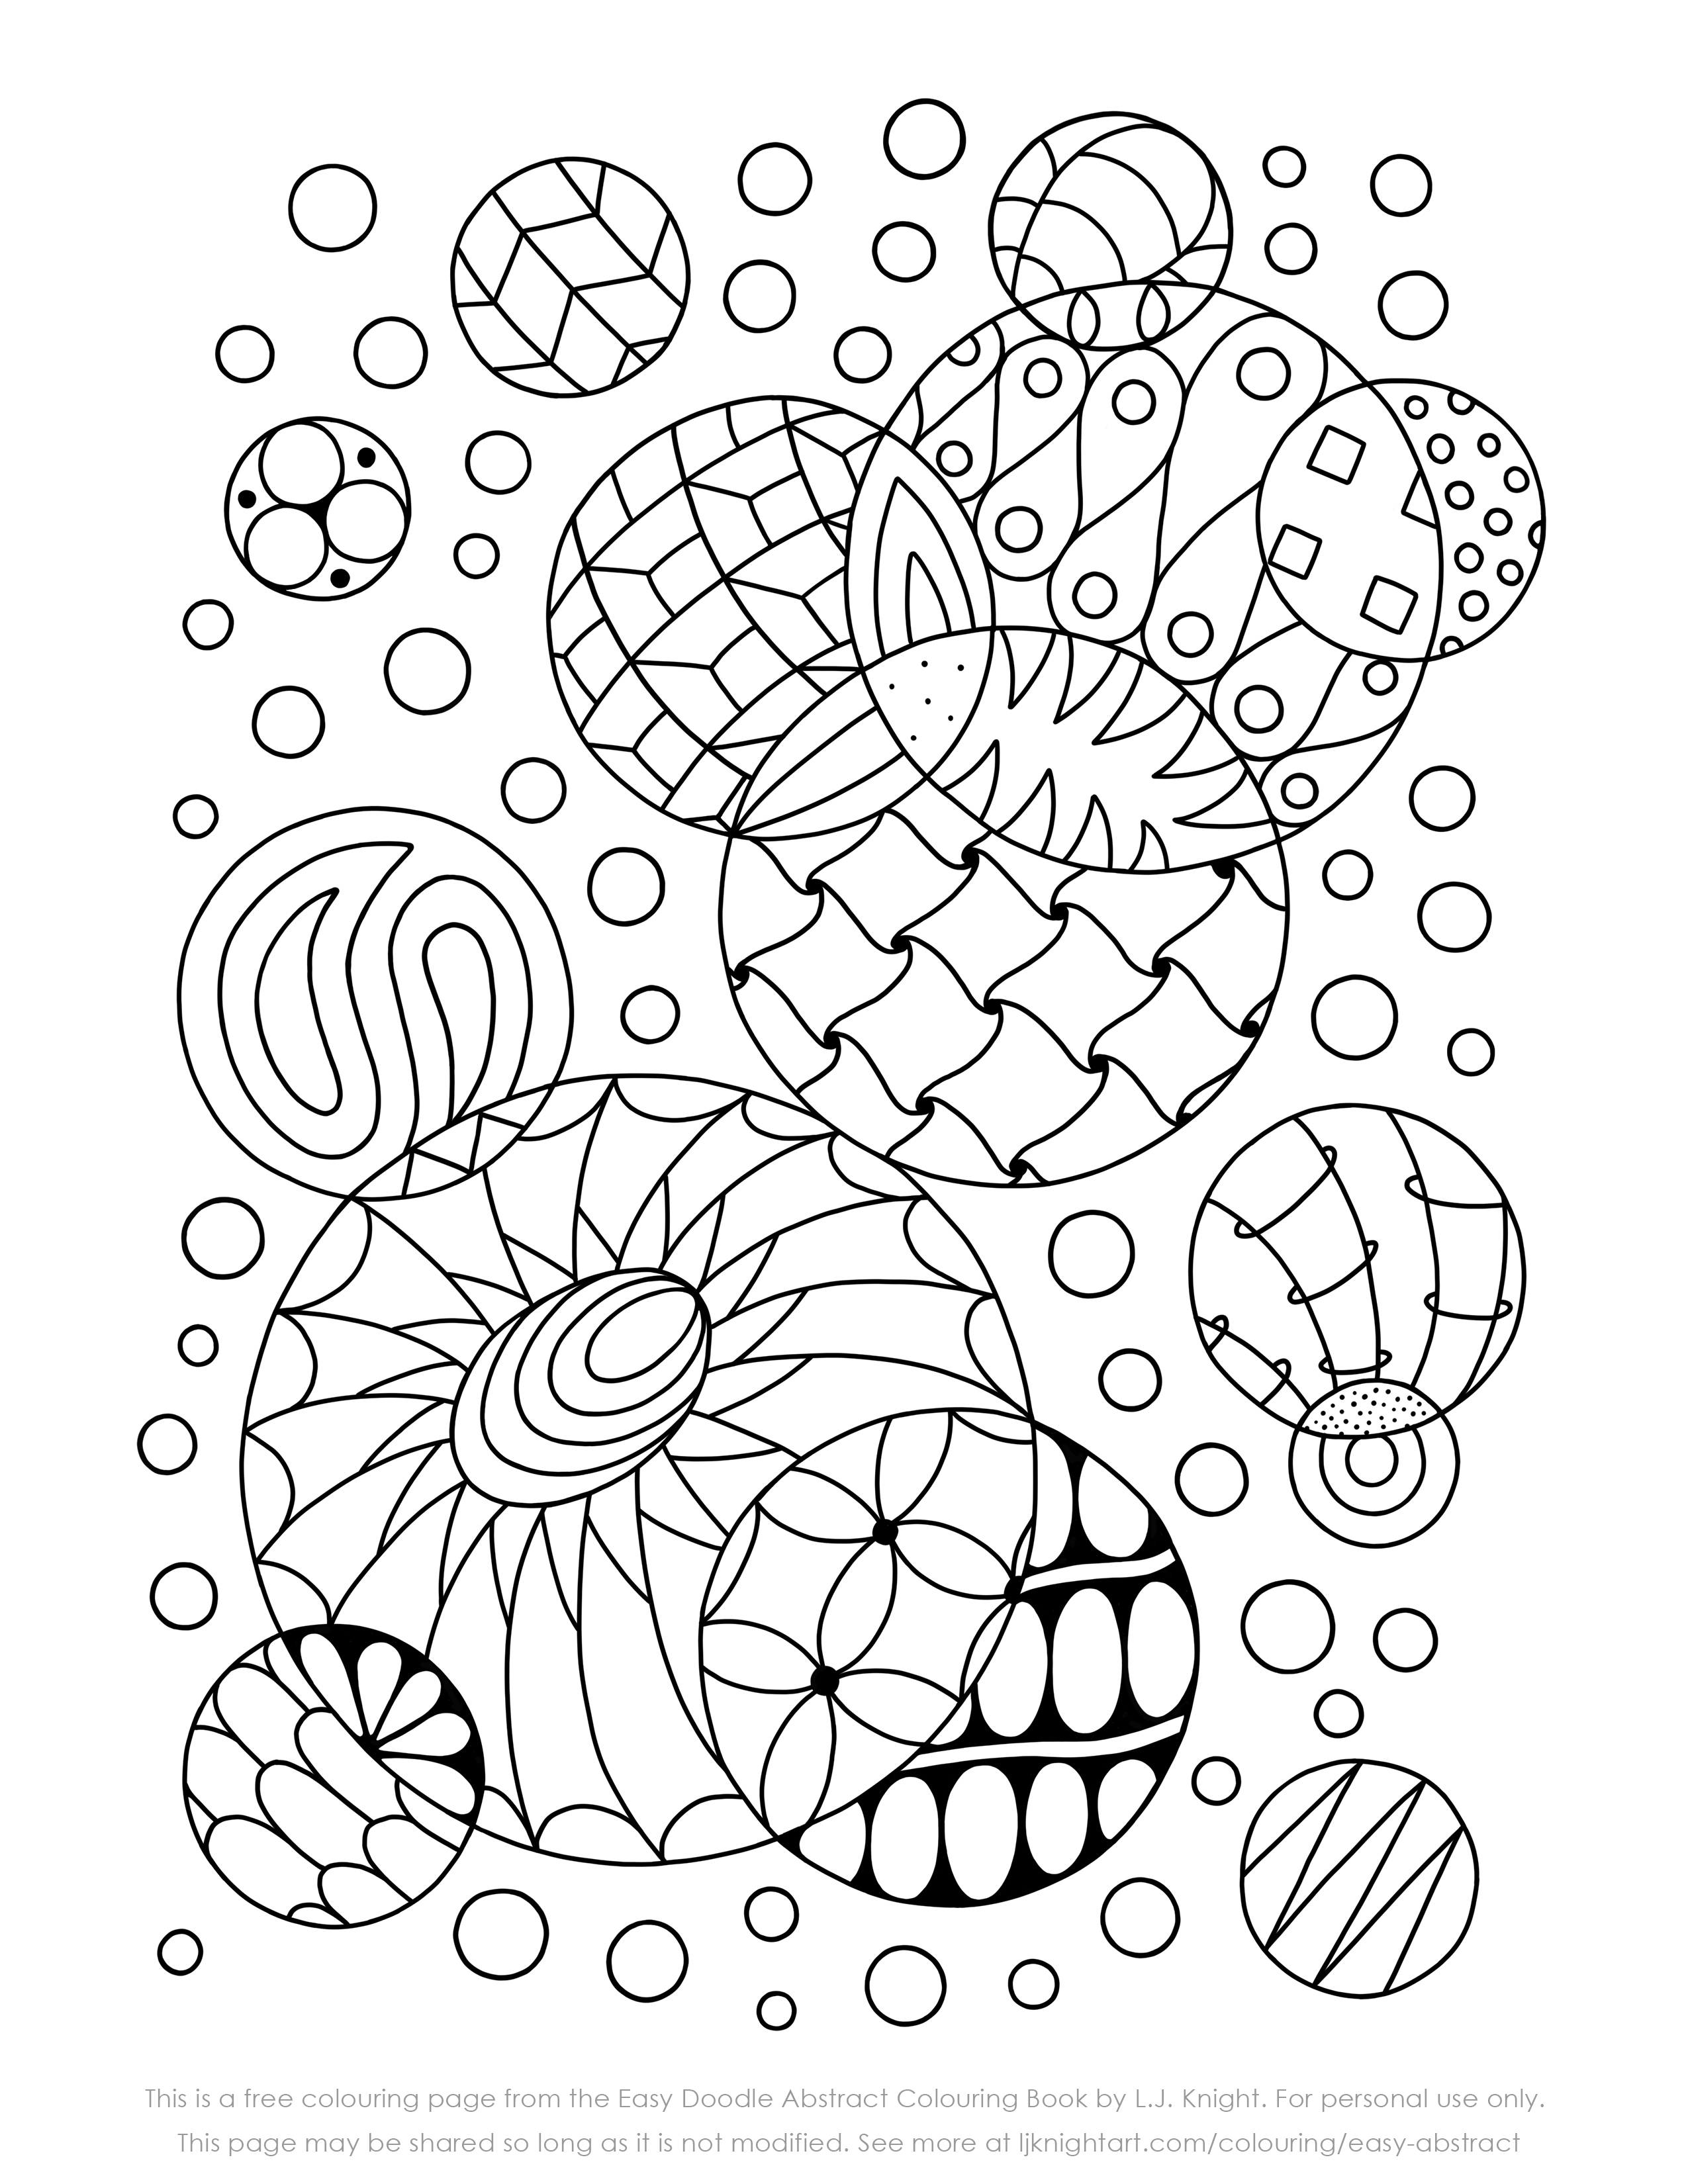 free abstract coloring pages free coloring page abstract adventure ii free pages pages free abstract coloring